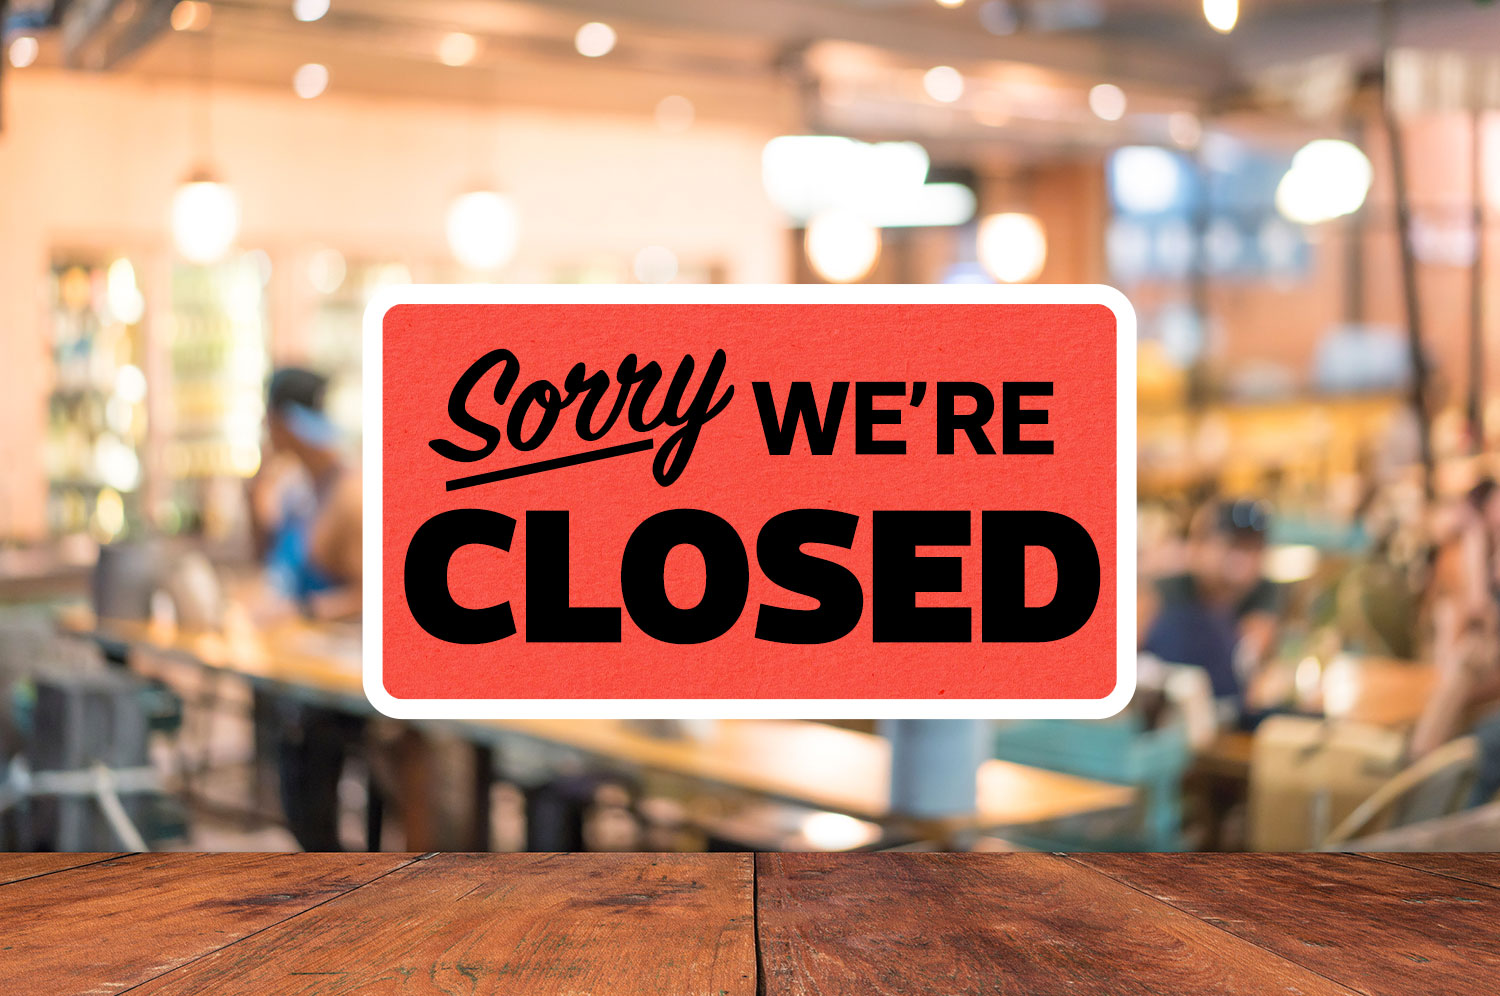 A Round-Up of Nashville Restaurant Closings This Month